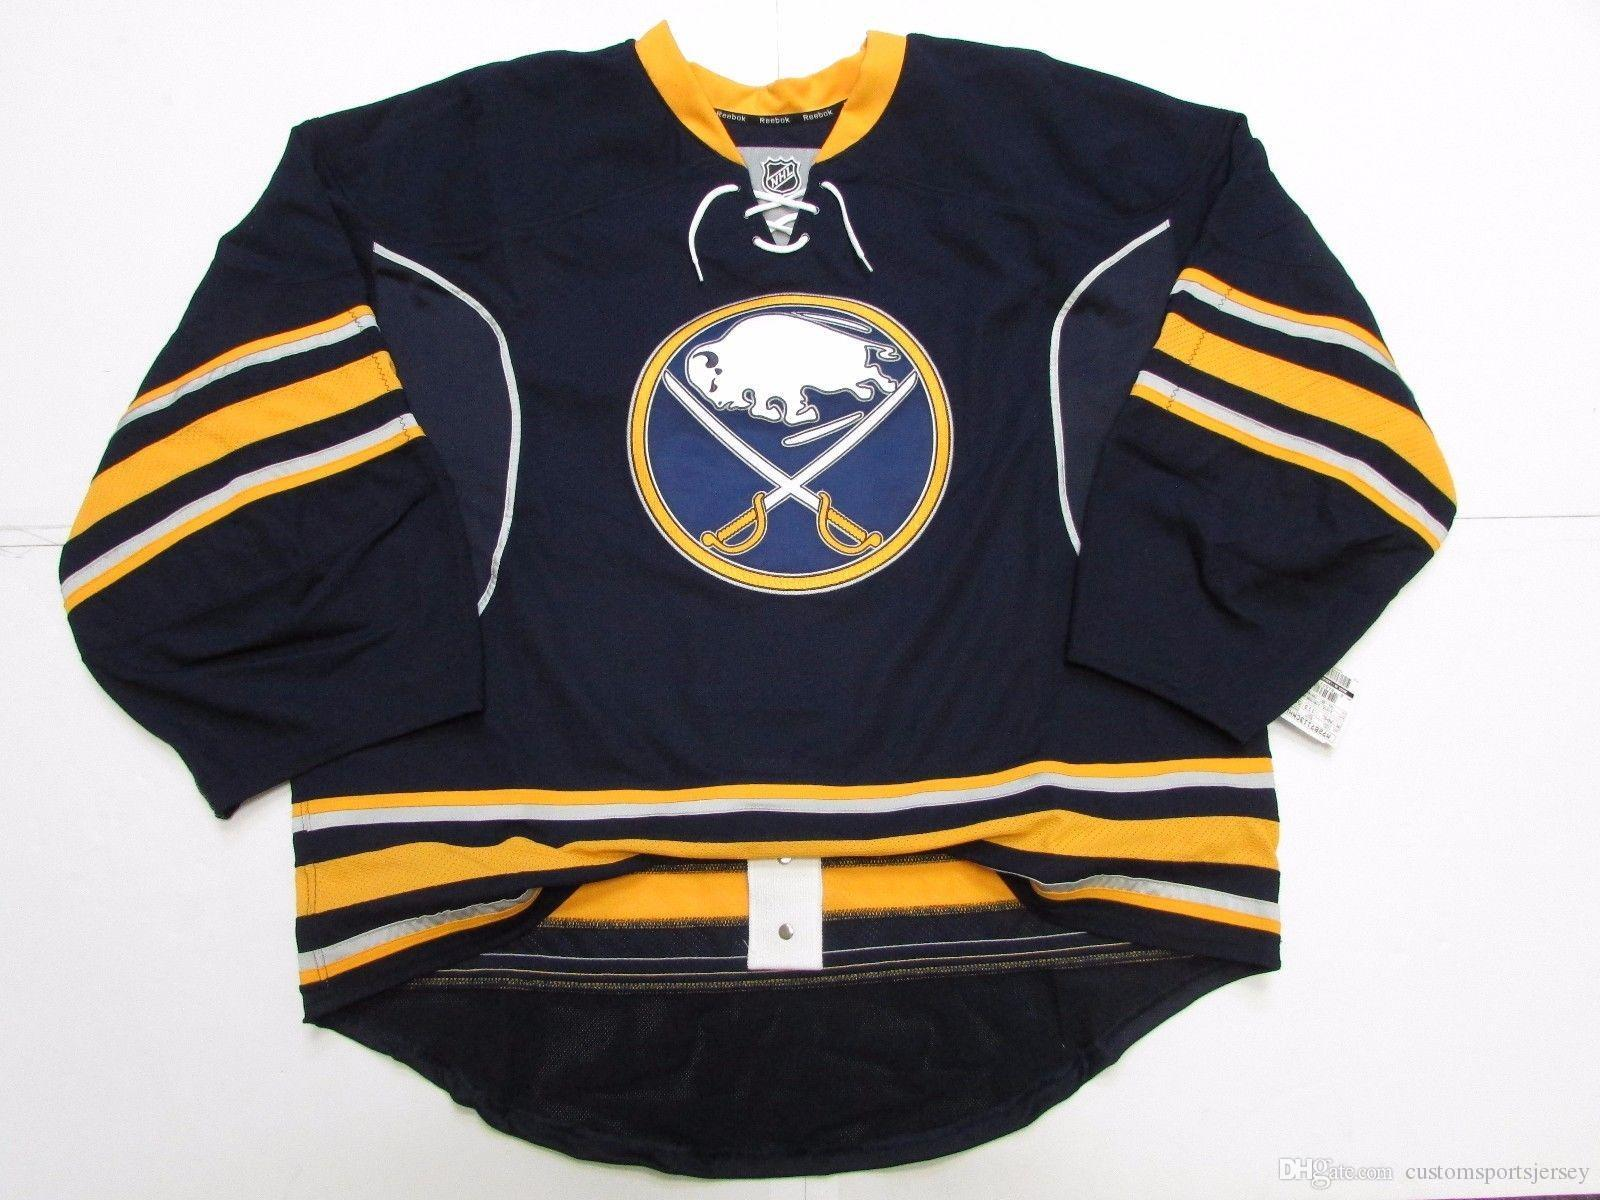 41c6681a3e9 2019 Cheap Custom BUFFALO SABRES HOME JERSEY GOALIE CUT 58 Stitch Add Any  Number Any Name Mens Hockey Jersey From Customsportsjersey